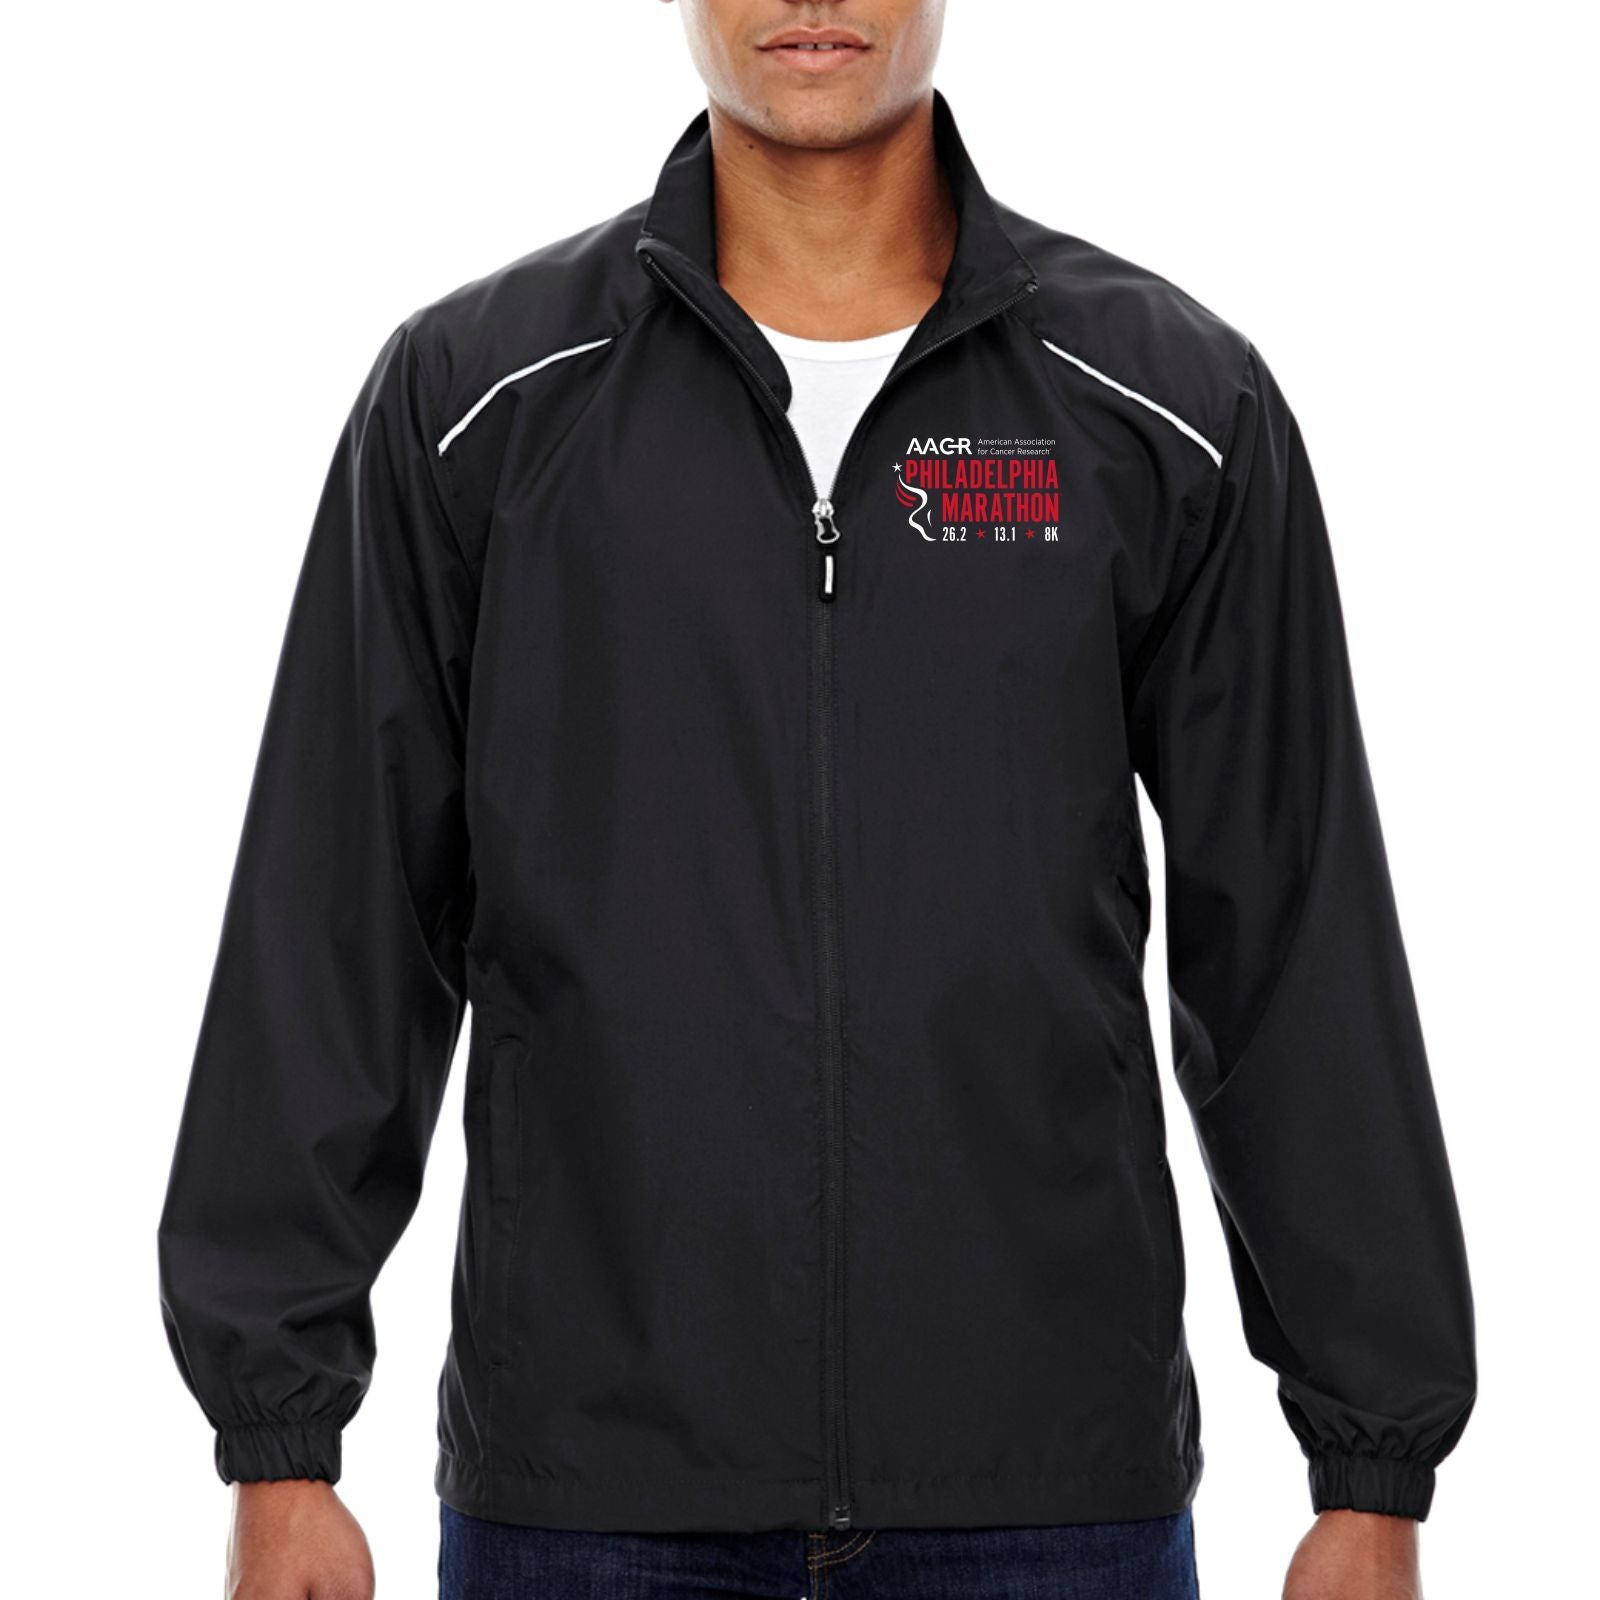 AACR Philadelphia Marathon 'Big Back' Men's Tech Lightweight Full Zip Jacket - Black